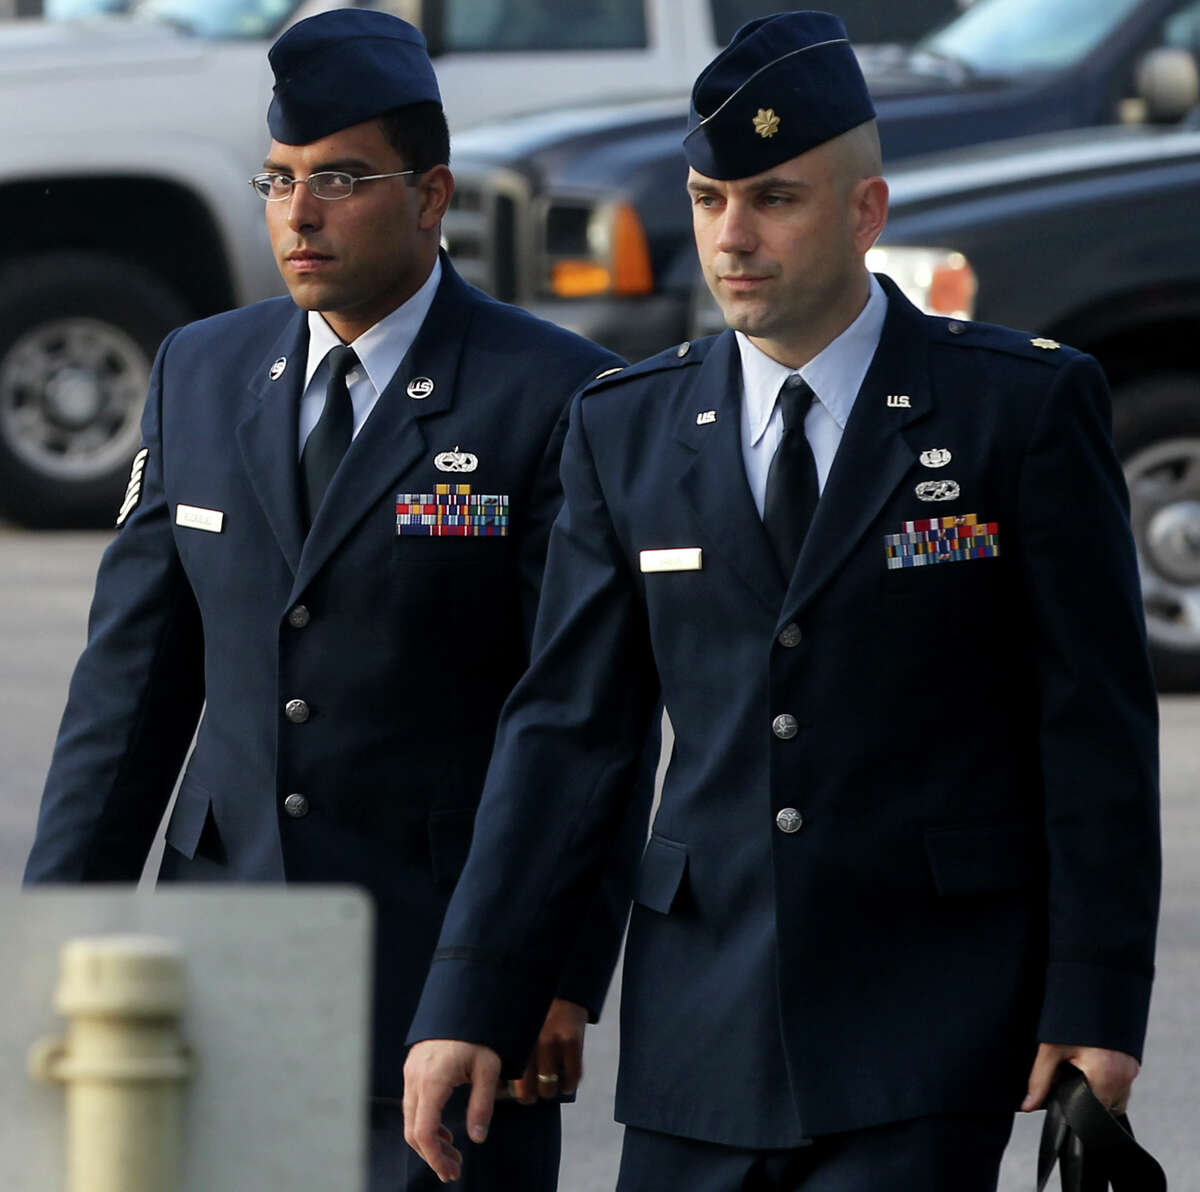 Air Force Tech Sergeant Jaime Rodriguez (left) heads for court Thursday June 6, 2013 at Joint Base San Antonio-Lackland. He is accused of having illicit contact with 18 women, and having sex with four of them.